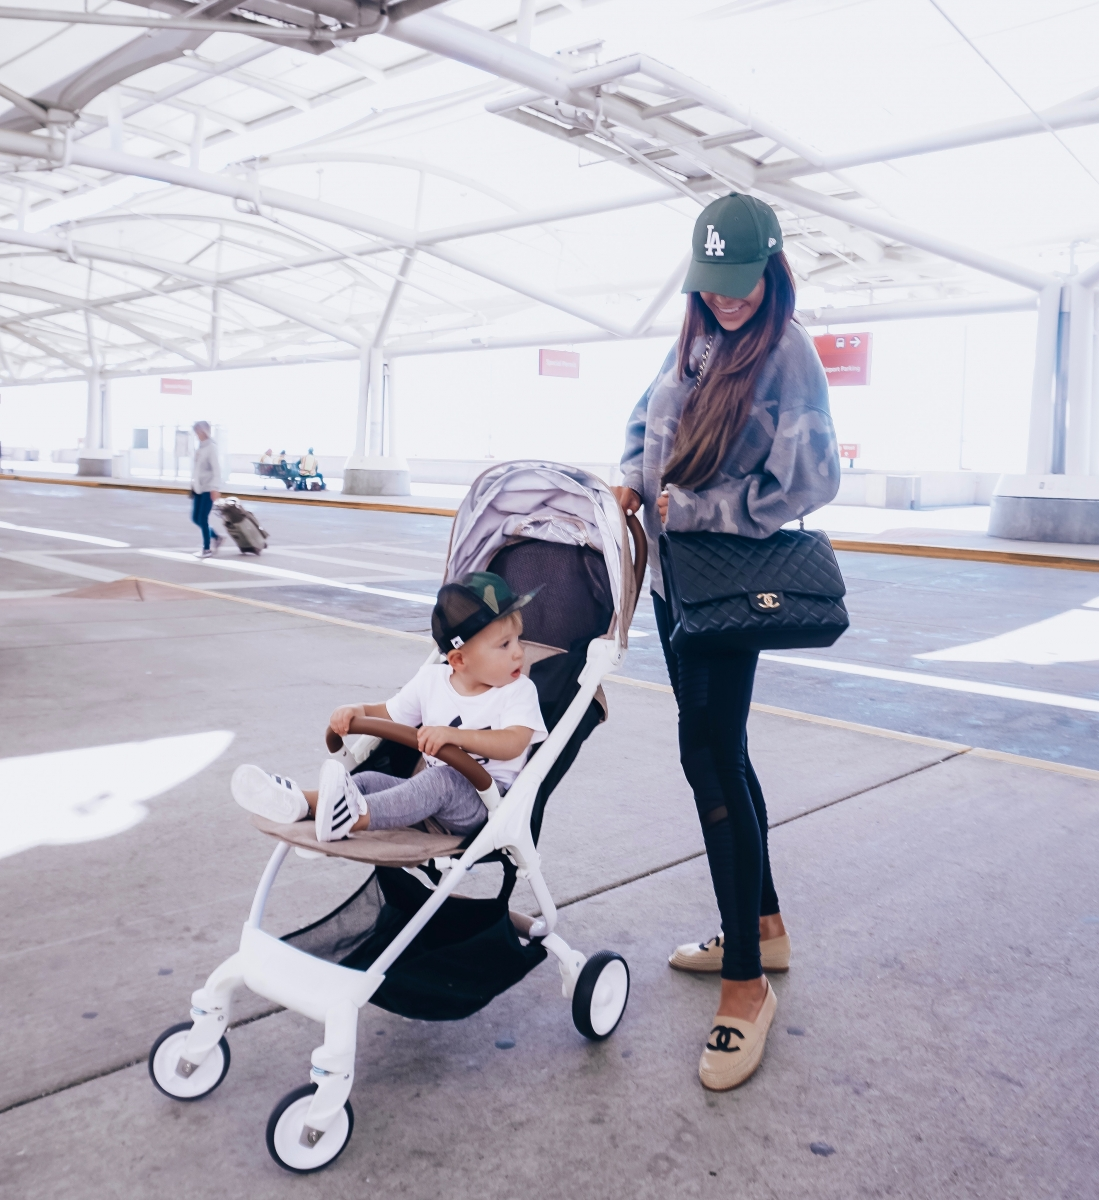 pinterest cute airport travel fashion outfit fall 2018, emily gemma travel style, stylish cute casual travel outfit idea 2018, travel stroller baby sing amazon, camo sweatshirt leggings travel outfit